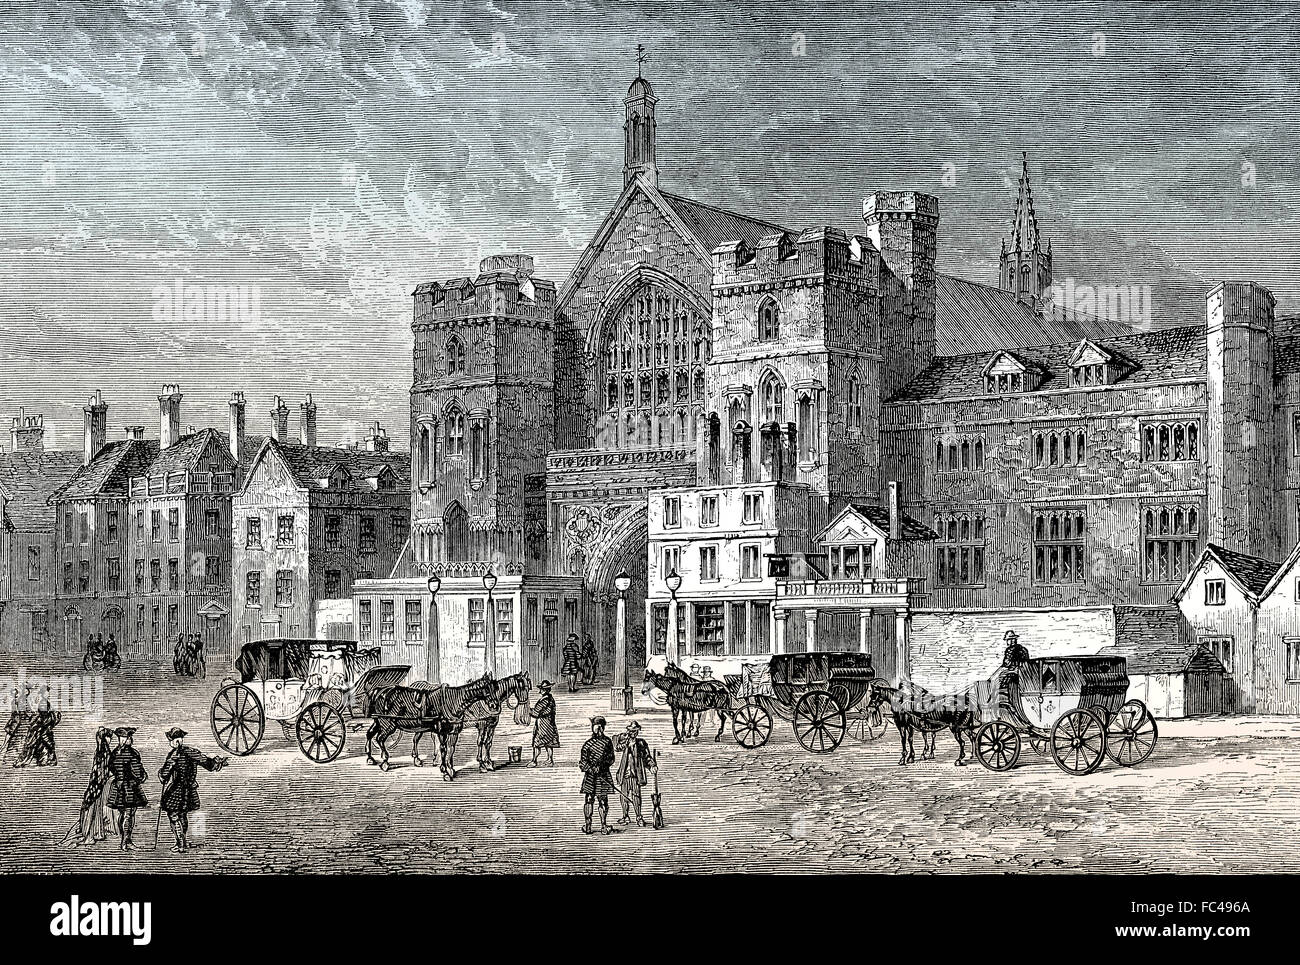 Westminster Hall, 1808, Parliament before 1834 Fire, London, England - Stock Image